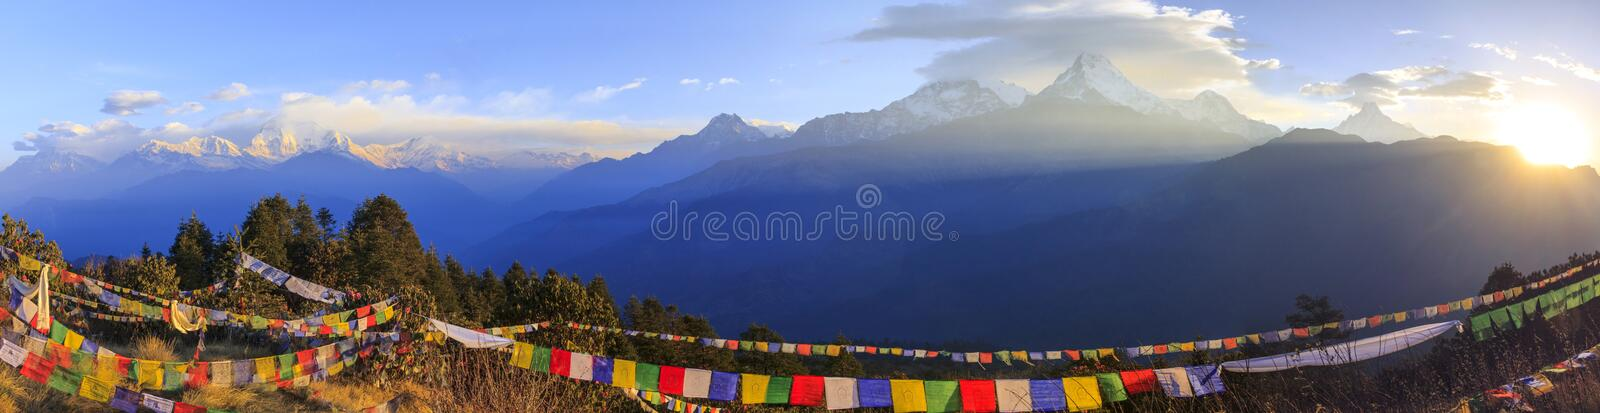 Himalaya sunrise and Annapurna mountain range in panorama, Poonhill, Nepal royalty free stock image